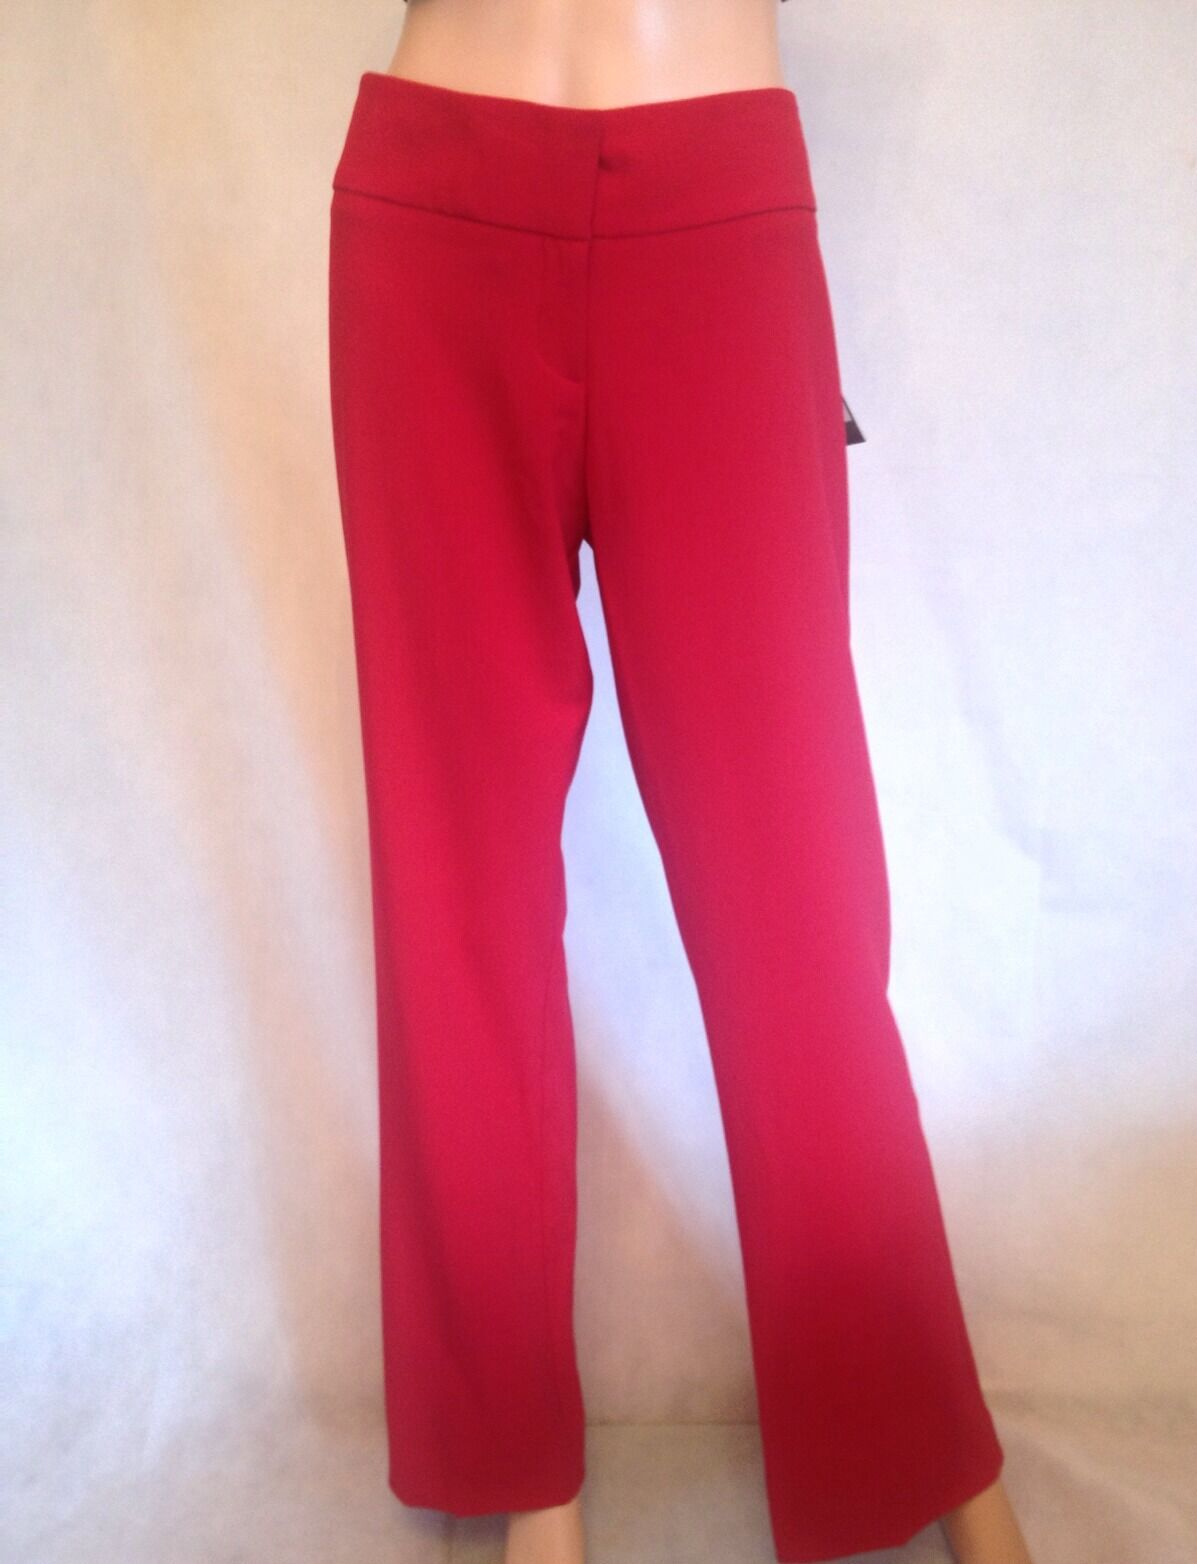 Kenneth Cole New York Designer Red  Wide Leg Trousers  Sz 16 W34 L32 Pp48